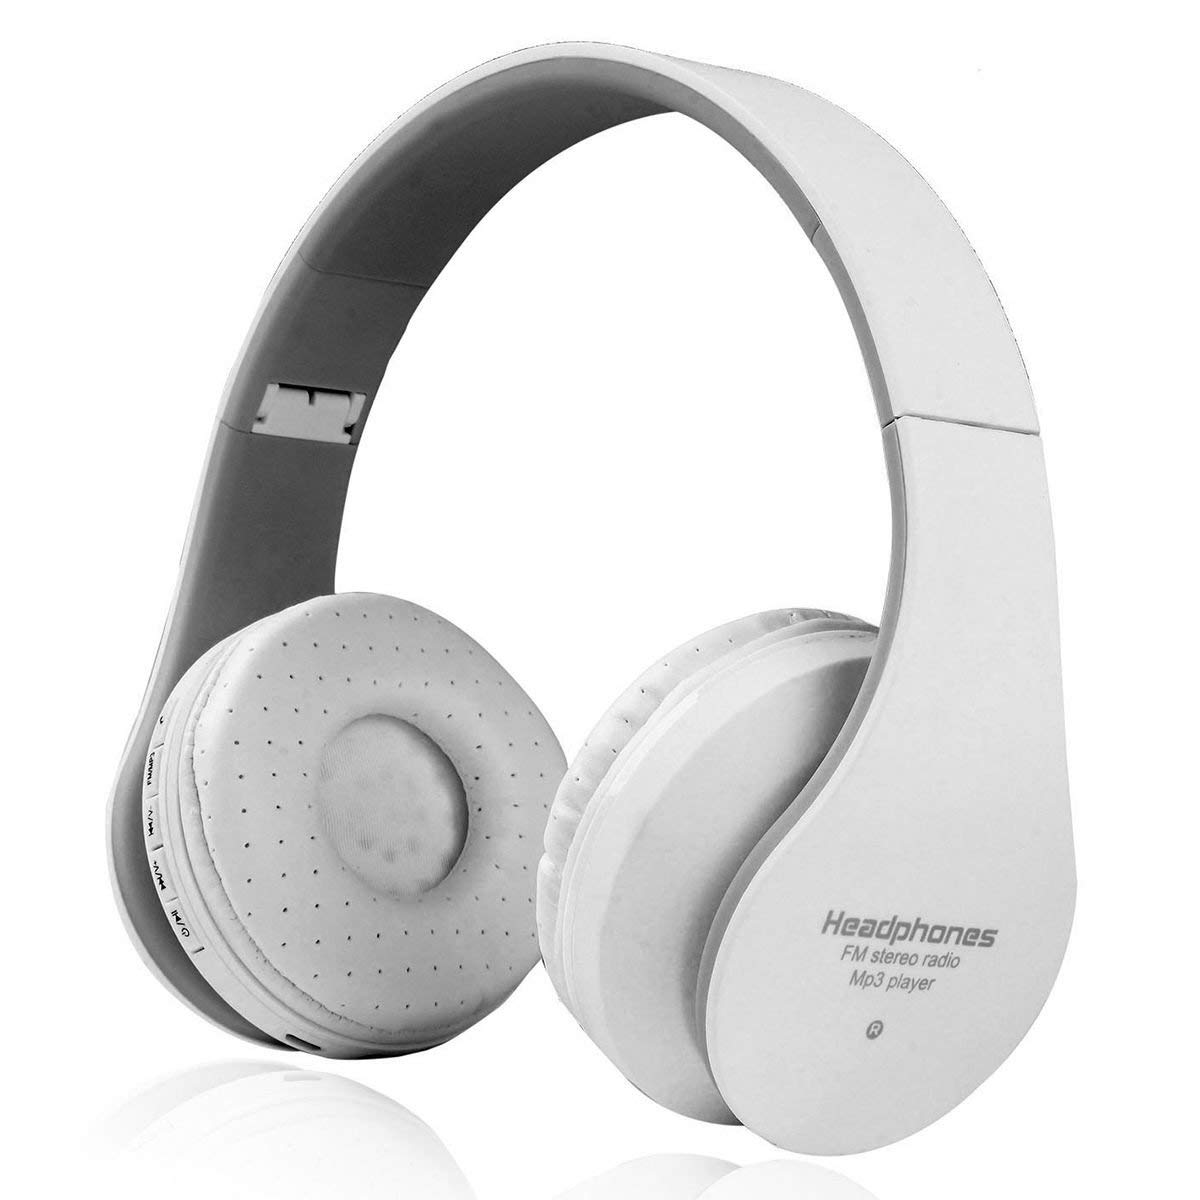 SODIAL Wireless Headphones Bluetooth Stereo Bass Hifi Foldable Lightweight Wired and Wireless Headphones Support FM Radio, SD Card and Wired Modes Built in HD Mic